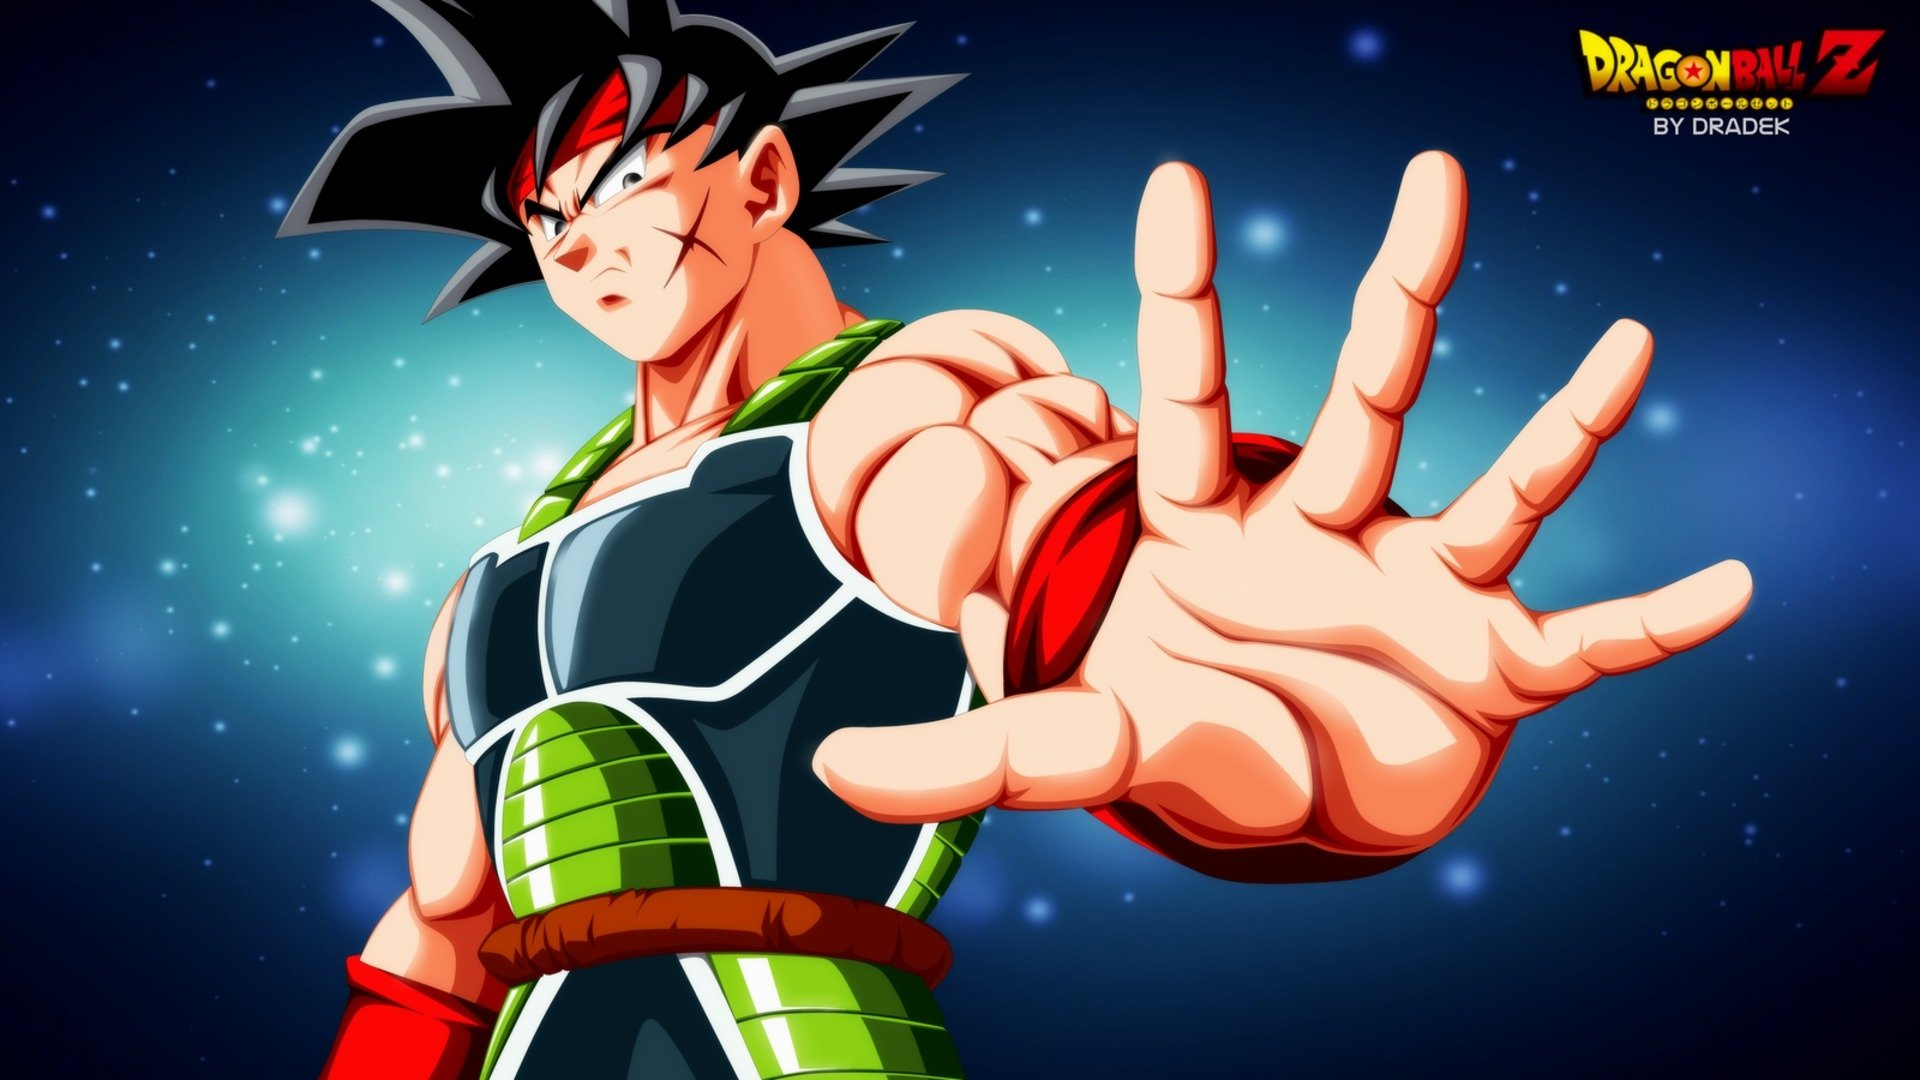 35 Bardock Dragon Ball Hd Wallpapers Background Images Wallpaper Abyss Page 2